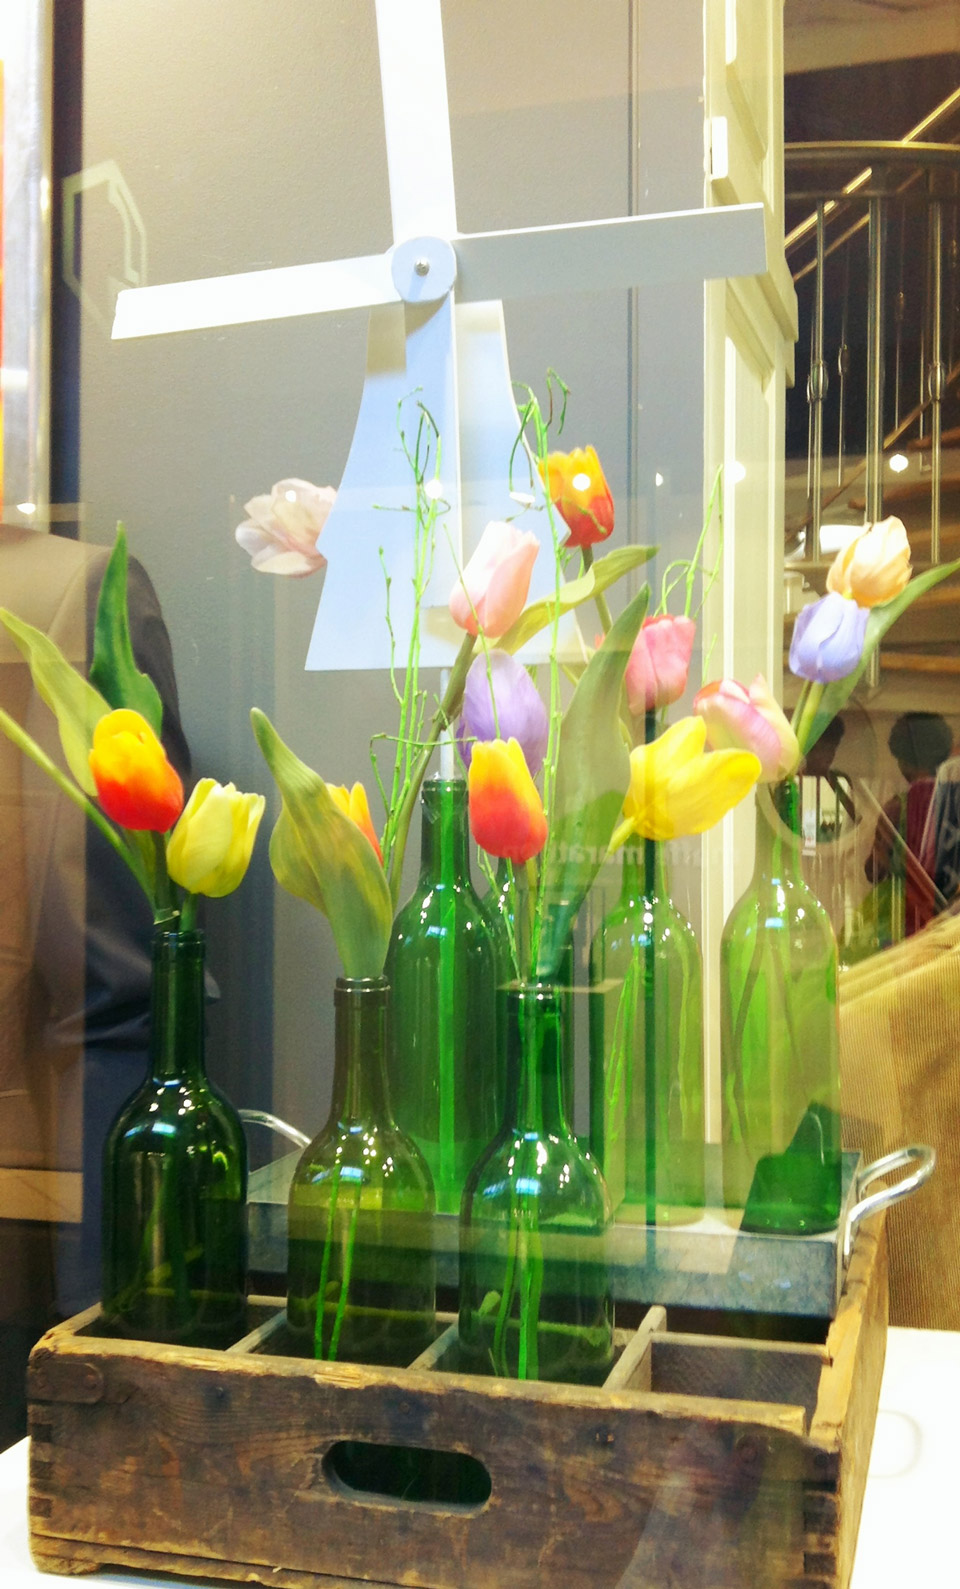 Tulips and windmill spring window display